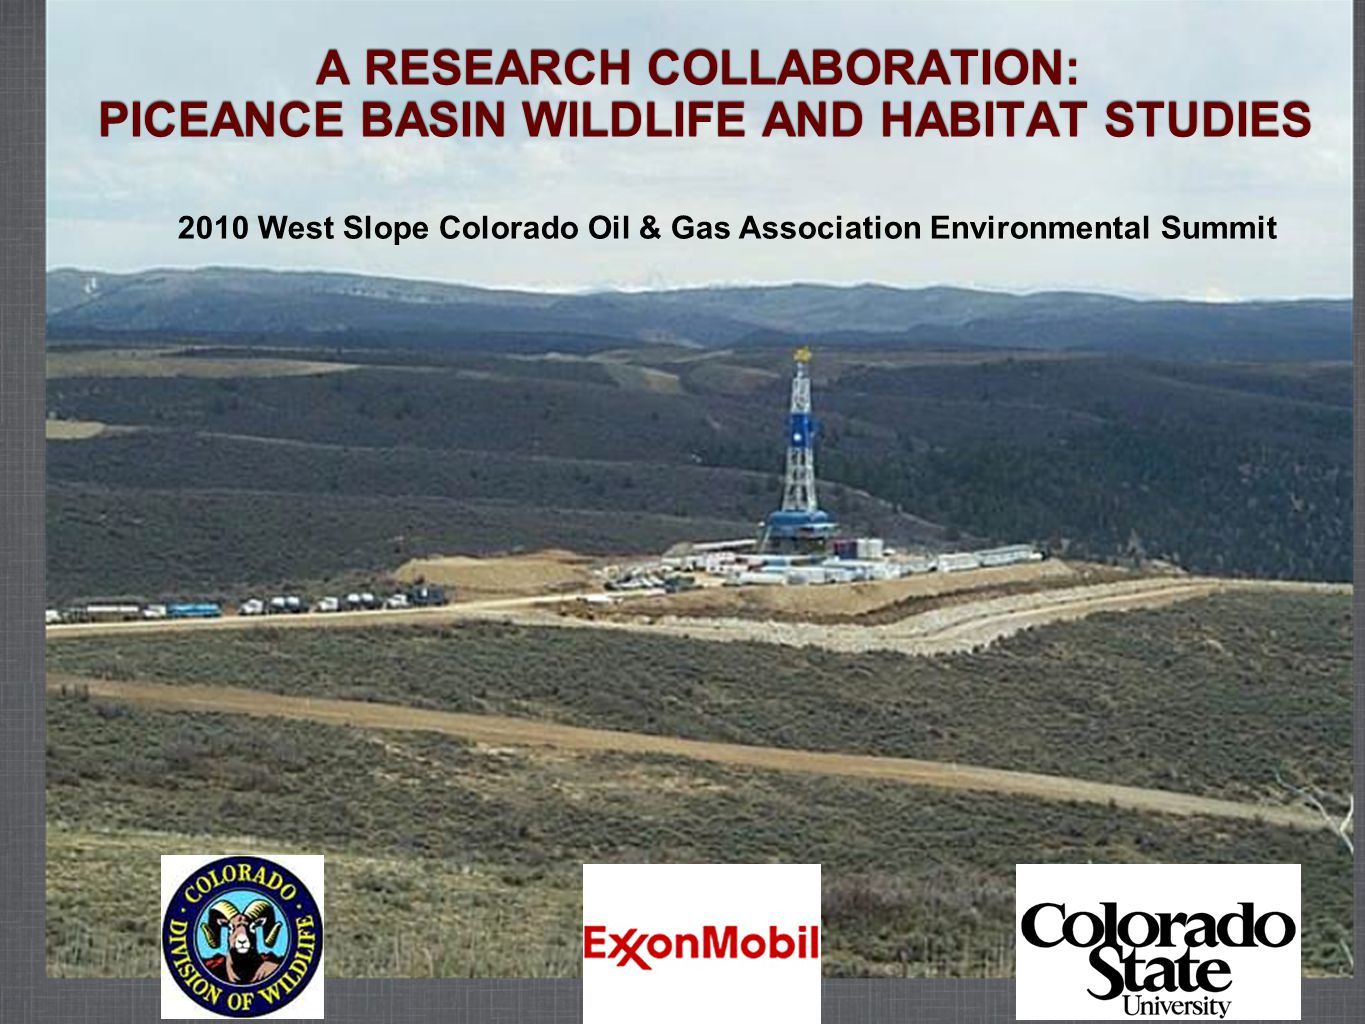 Cooperative Agreement Objectives Jointly study The potential effects of hydrocarbon development and extraction on wildlife and their supporting habitat; and The most efficient mitigation measures to reduce identified impacts on wildlife and associated habitat.